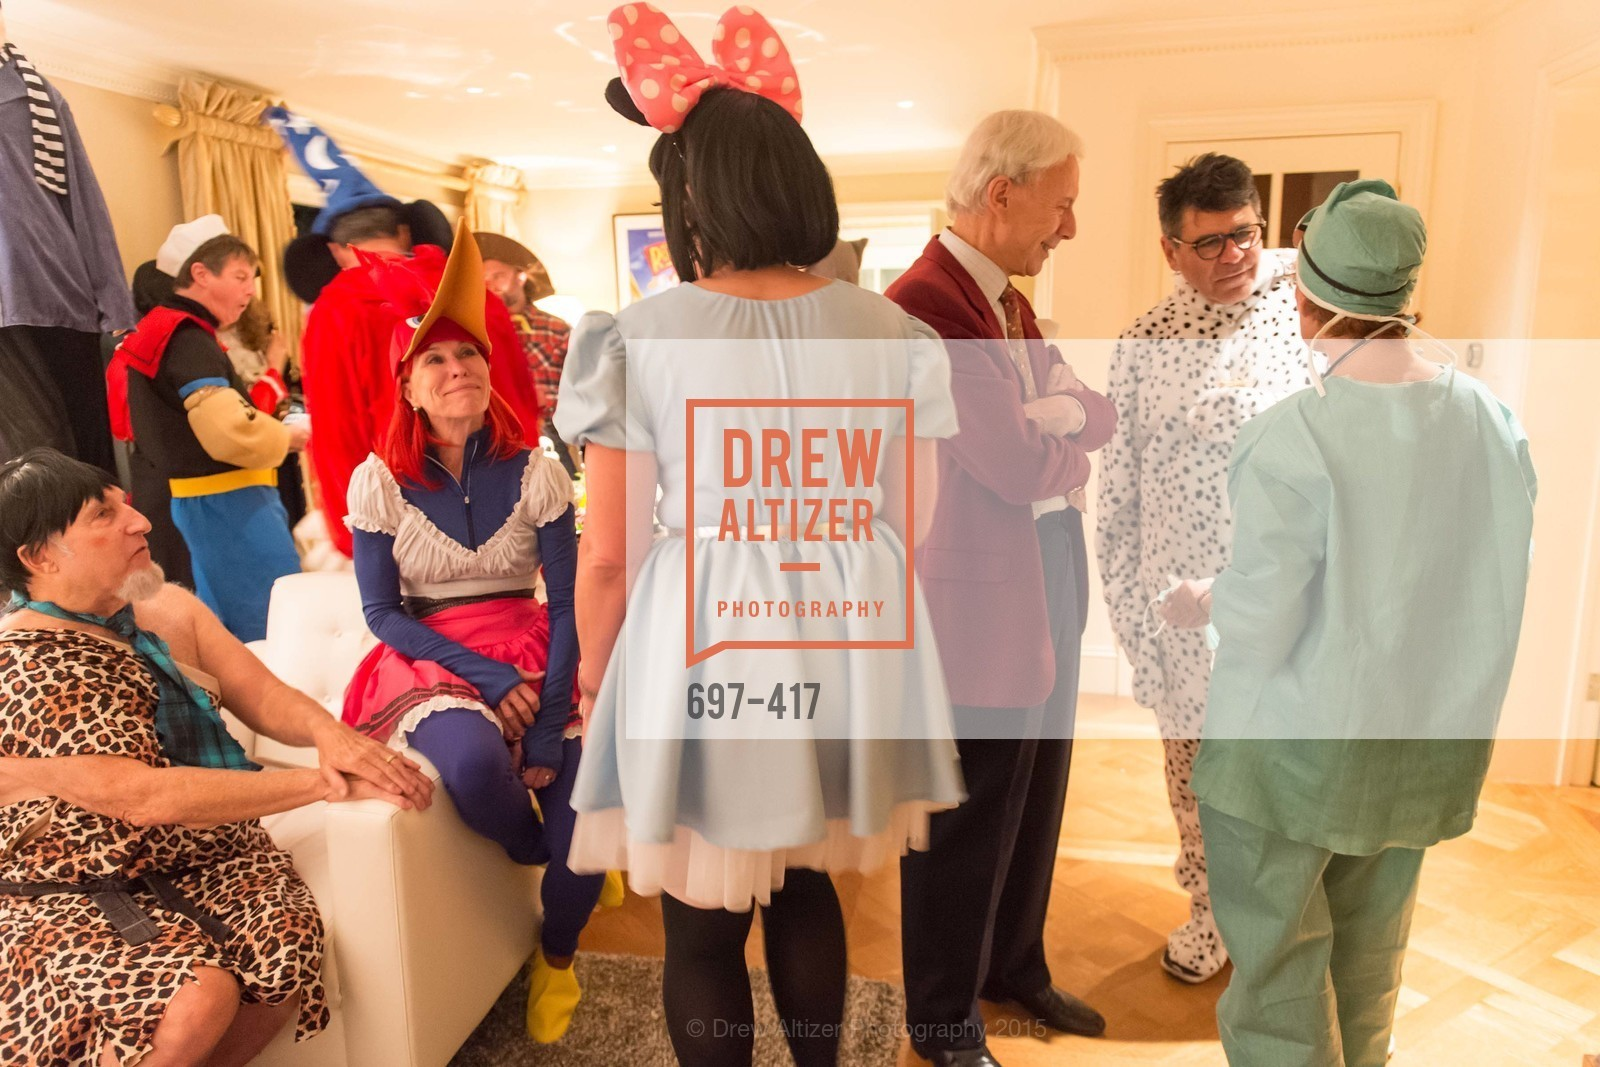 Harold Blajwas, Sheila Nemer, Robert Girard, Gary Garabedian, Wolfson-Federighi Cartoon Costume Party, Private Residence. 737 Bay Road, October 24th, 2015,Drew Altizer, Drew Altizer Photography, full-service agency, private events, San Francisco photographer, photographer california